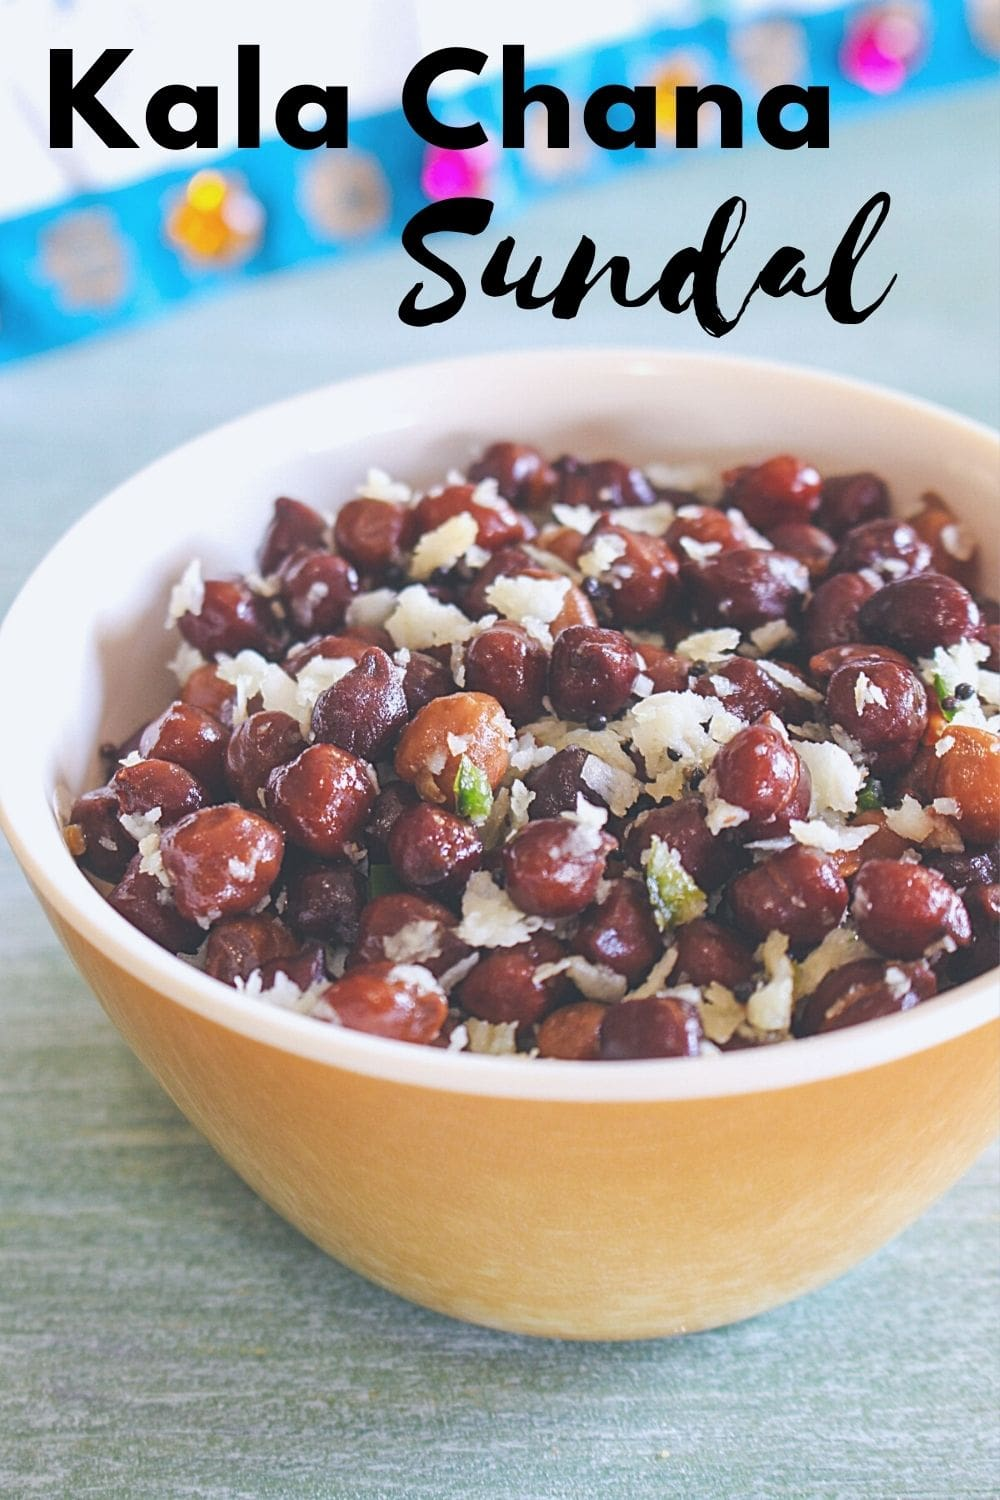 Kala chana sundal in a bowl with text on the image for pinterest